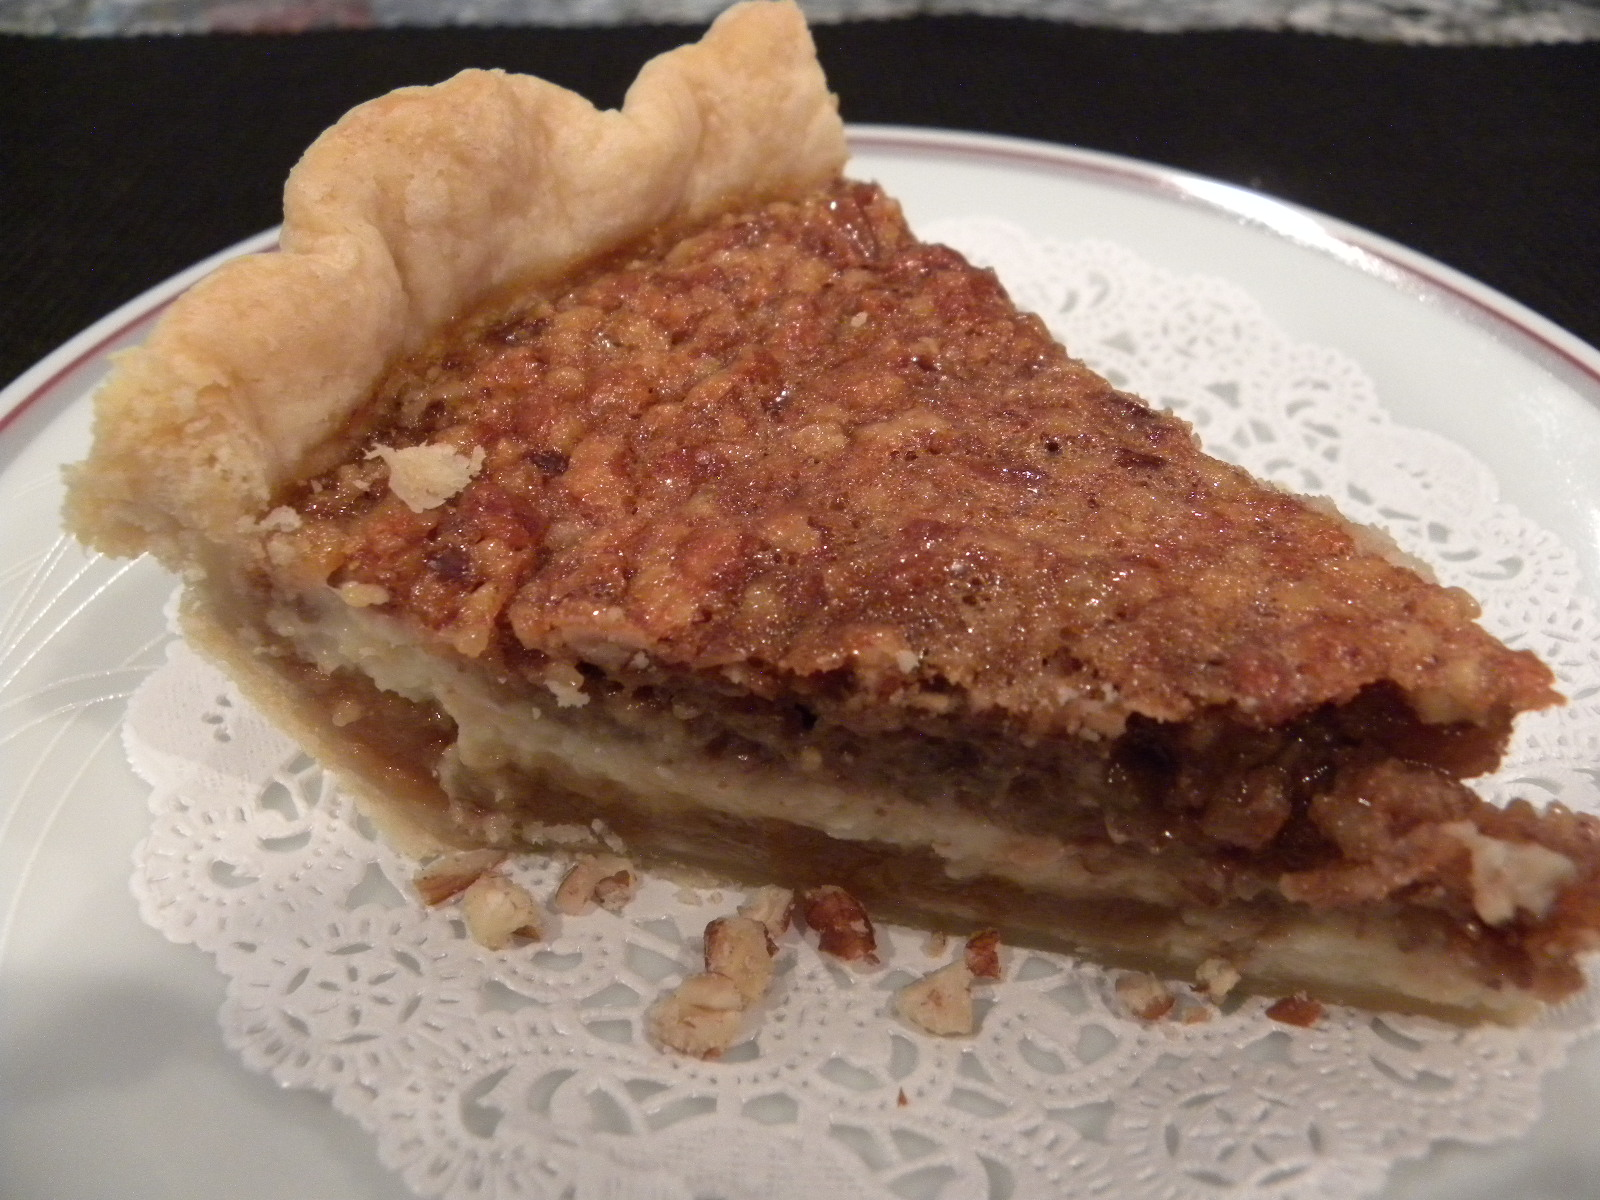 ... for Connecting with Family and Friends: Caramel - Pecan Cheesecake Pie